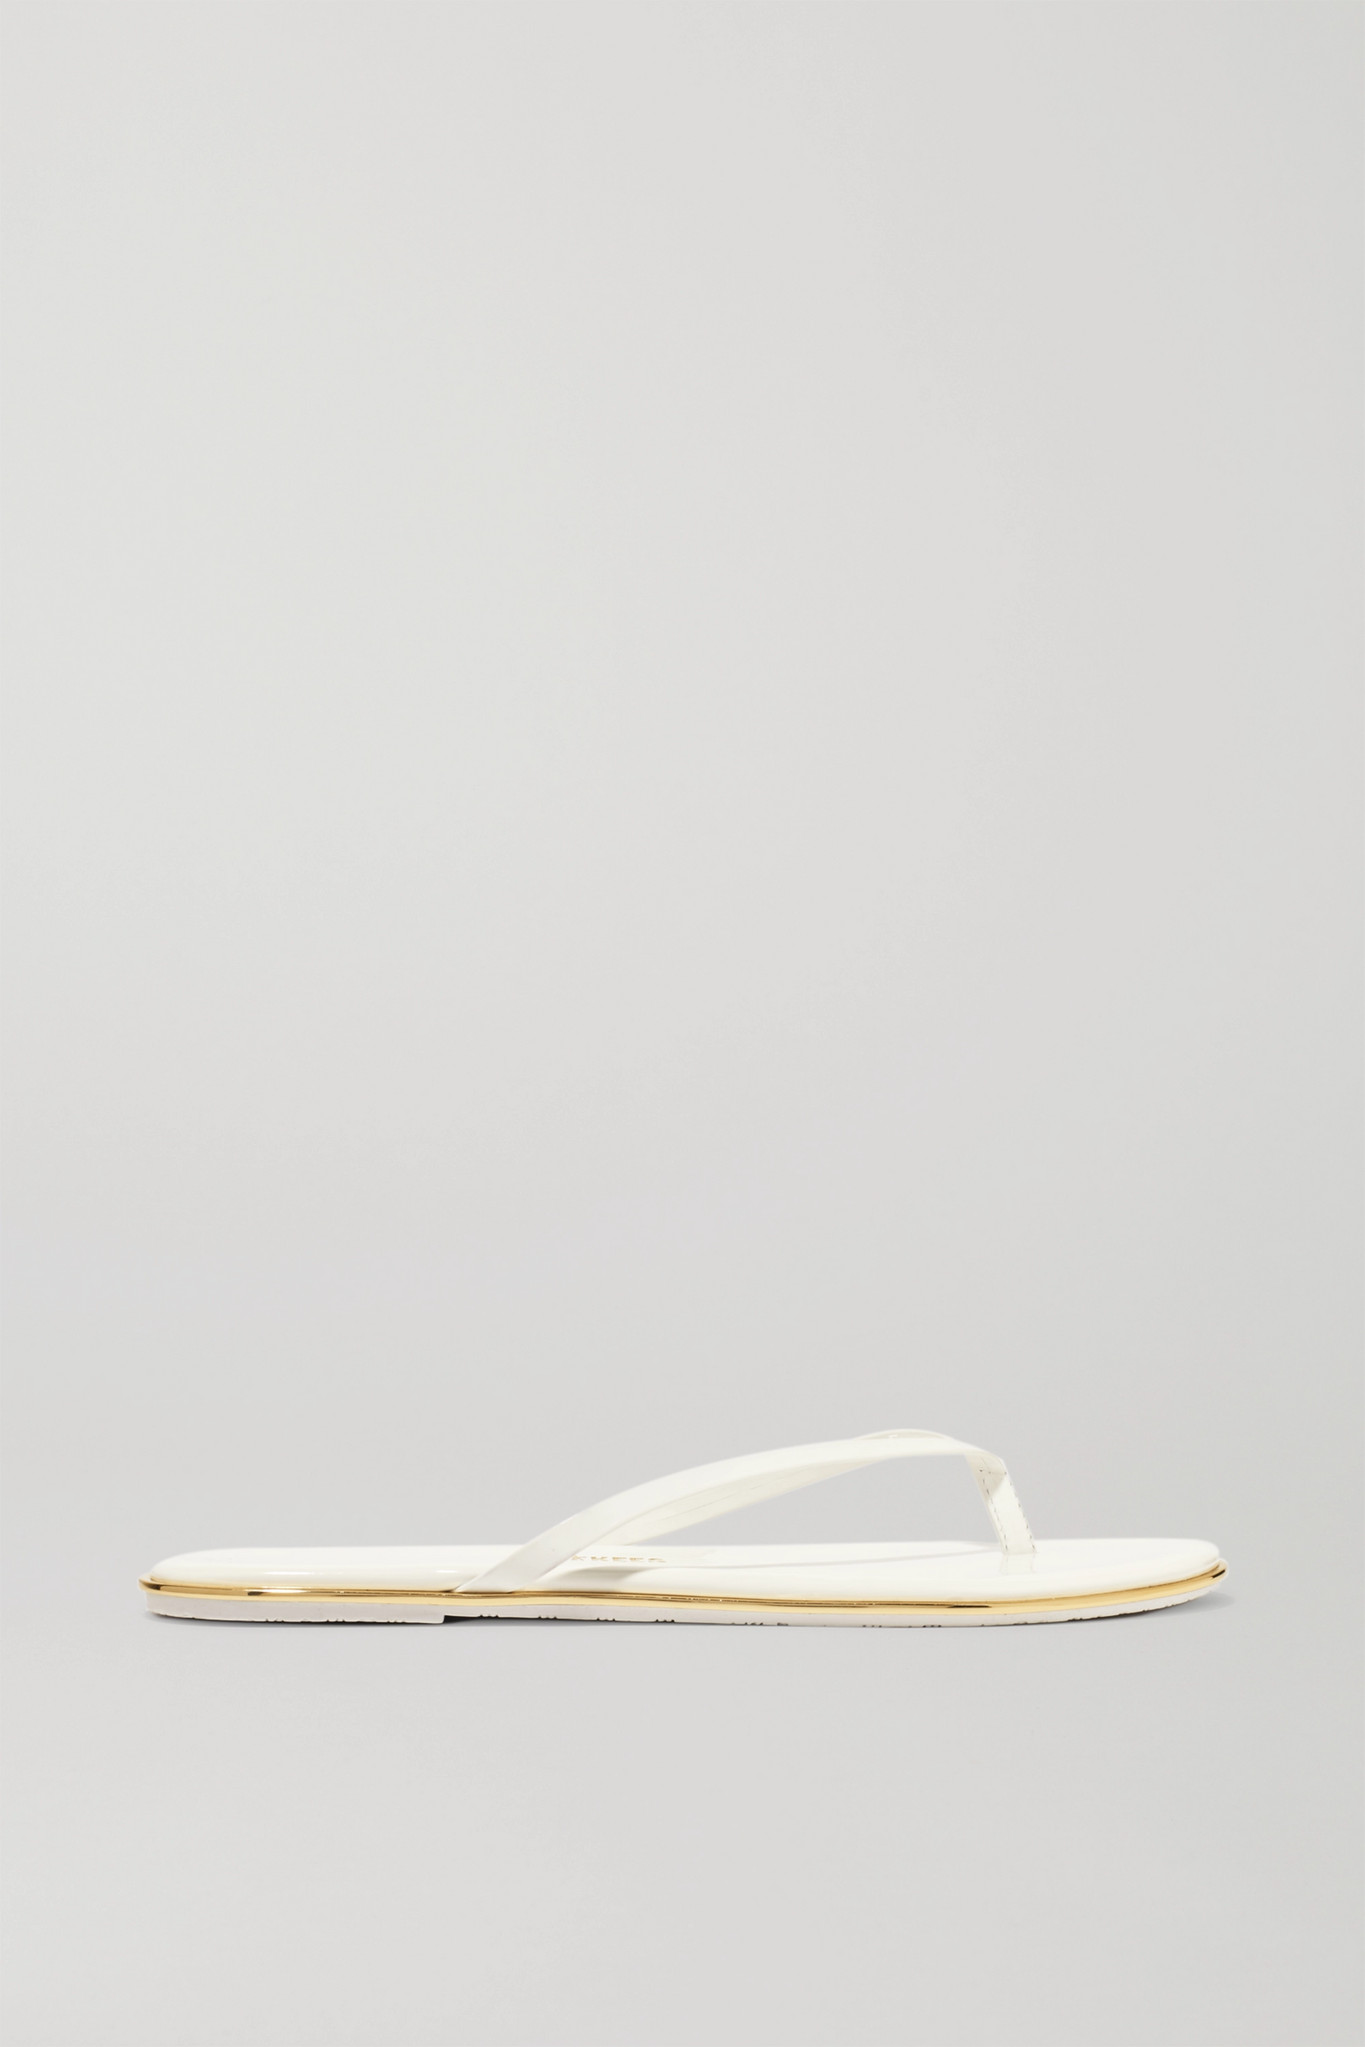 TKEES - Foundations Gloss Patent-leather Flip Flops - White - US5